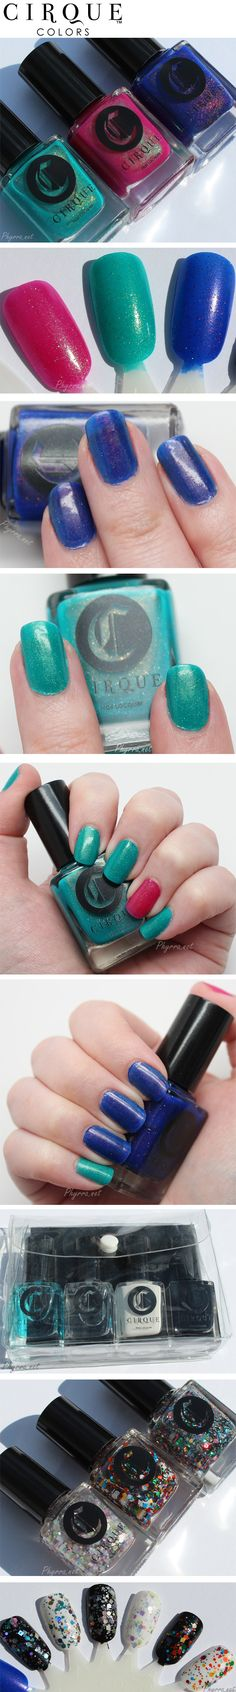 Cirque Kontiki and Back to Basics Collections. Such amazing polish!